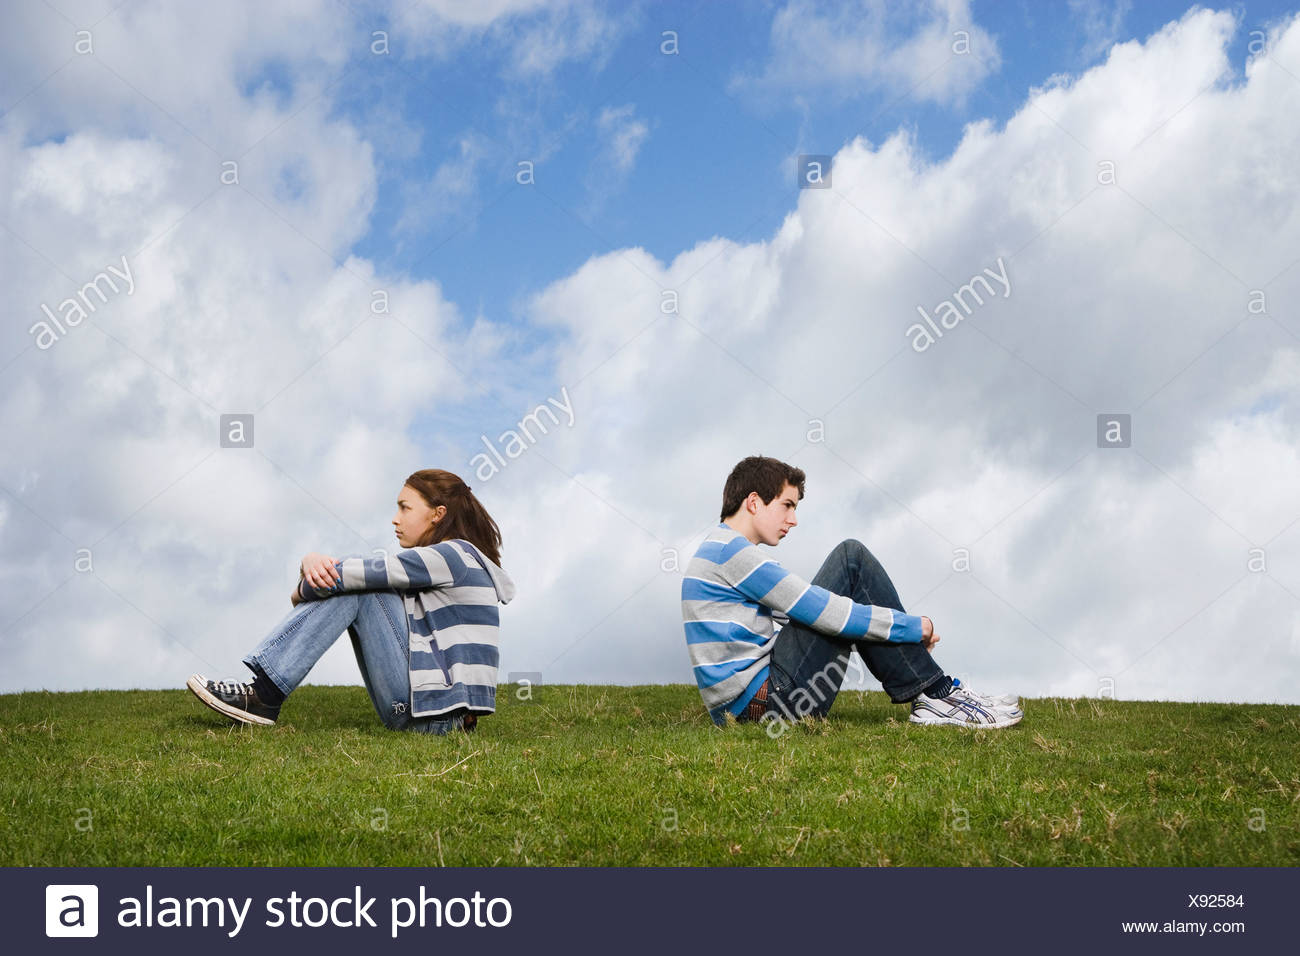 Teenage couple turned away from one another in field Stock Photo